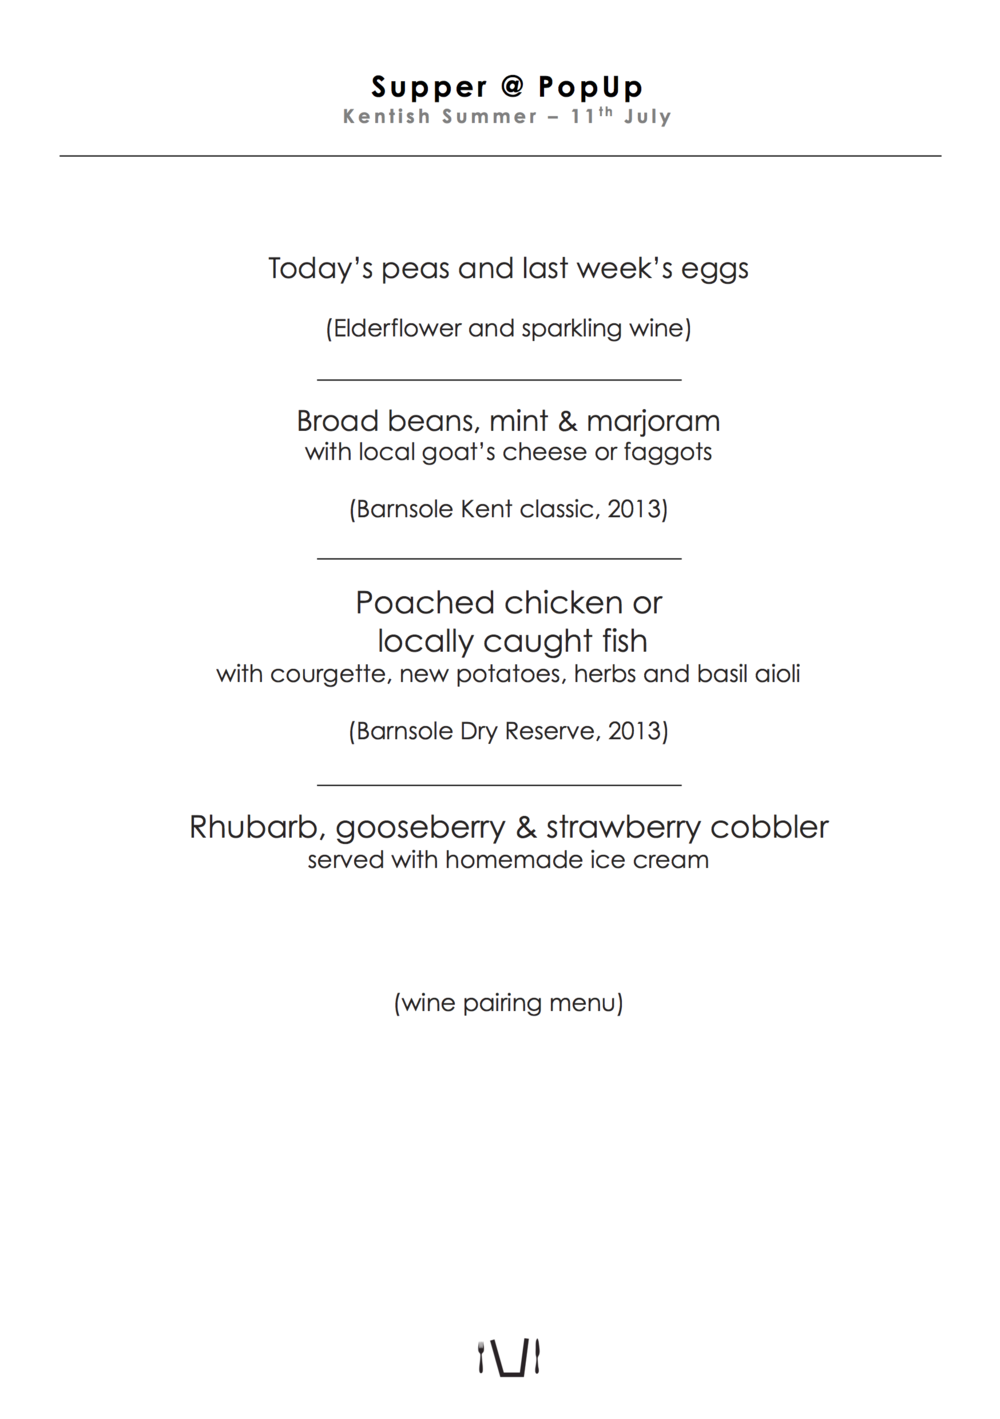 2015-07 supper popup printed table menu Kentish Summer.png